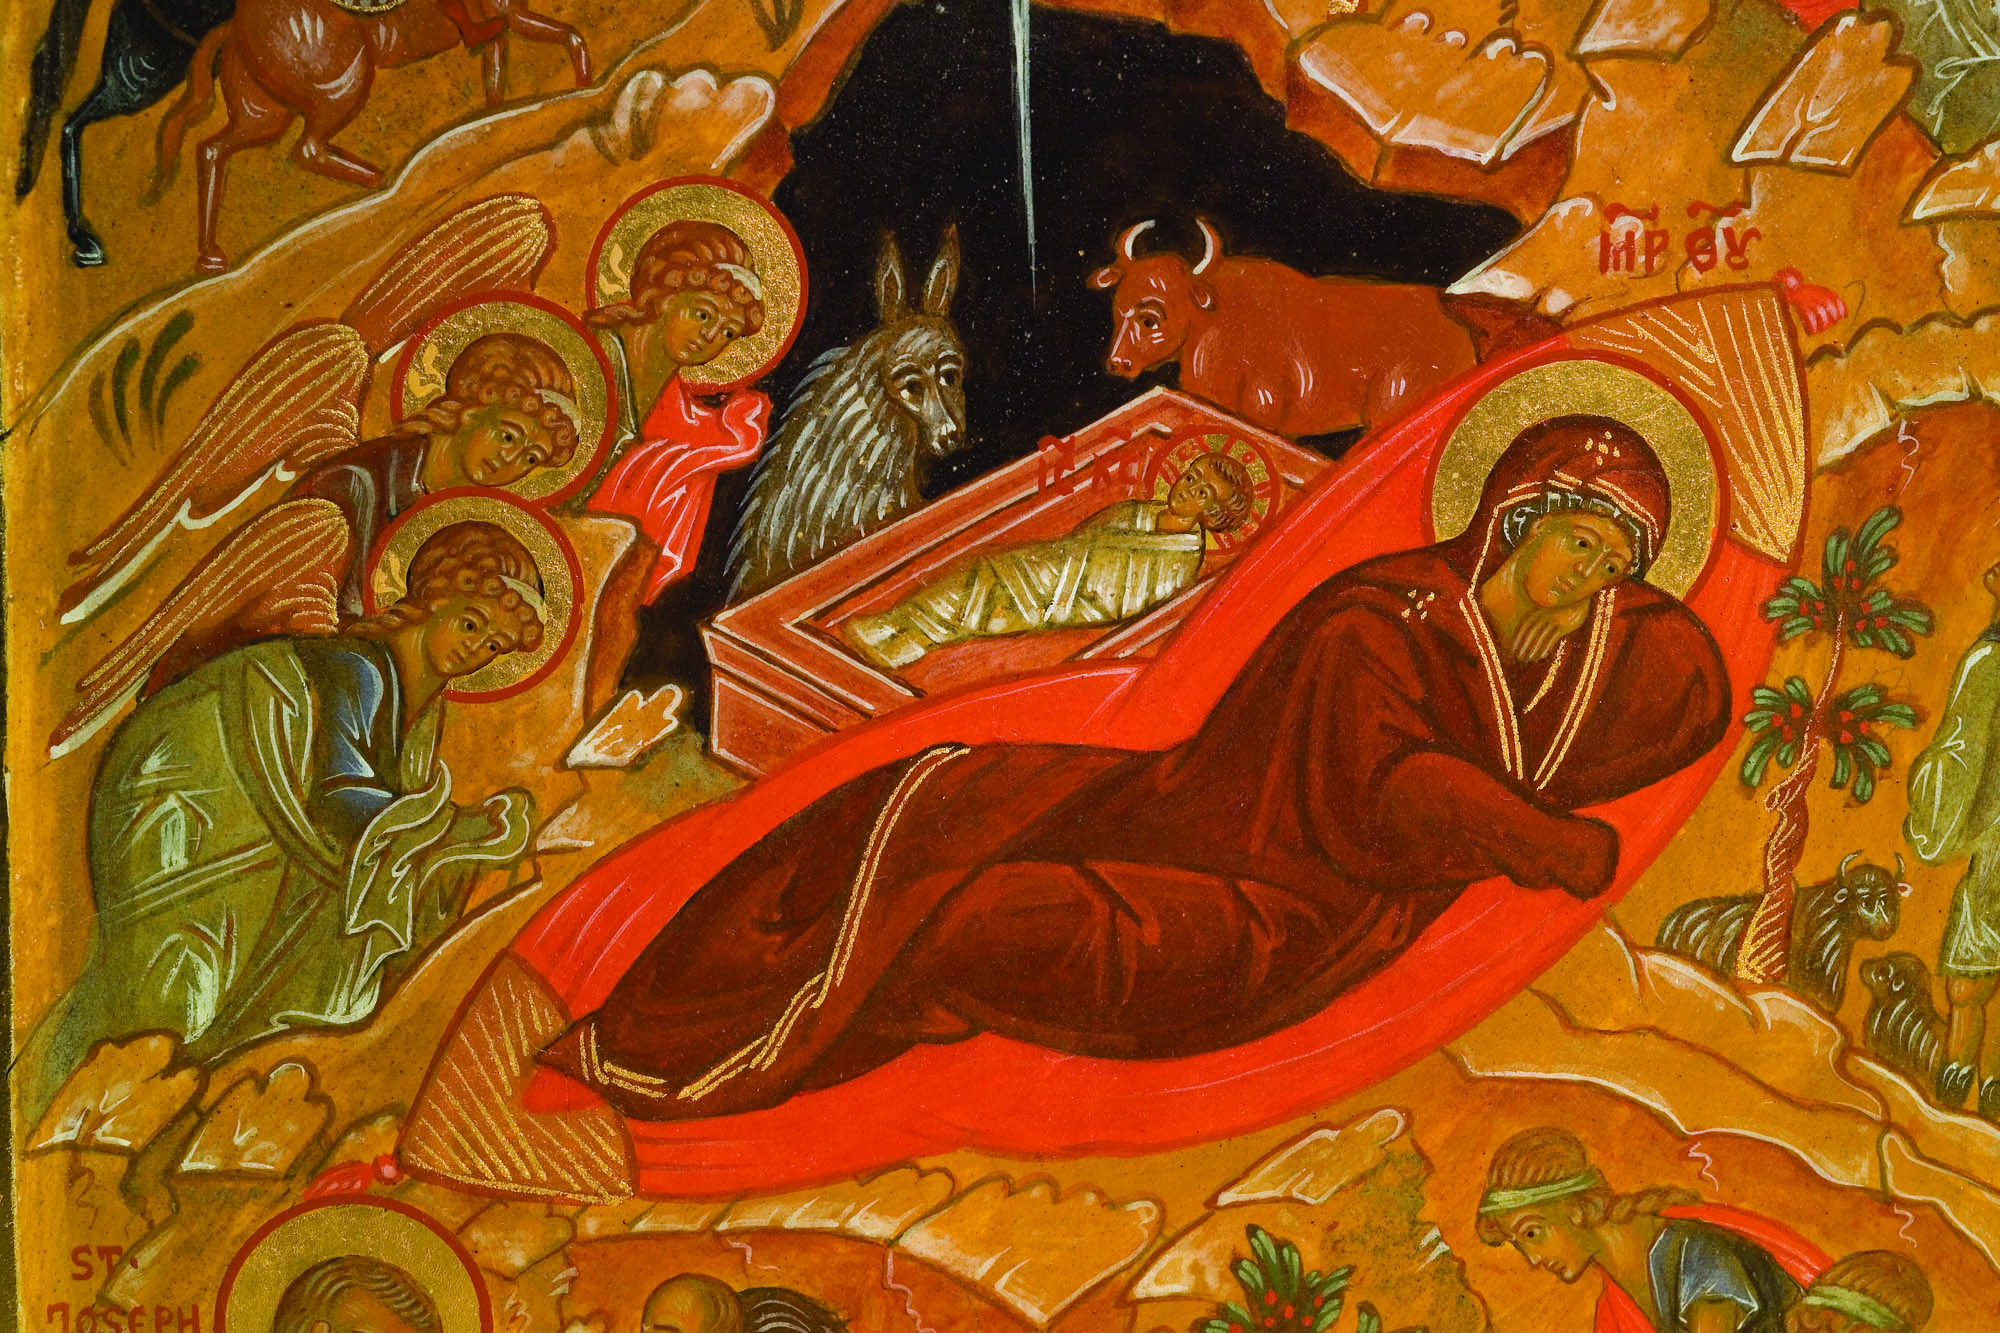 Detail from Triptych of the Holy Nativity of Christ, Russian Orthodox icon by Ksenia Pokrovsky. Photo: Jason Dowdle.